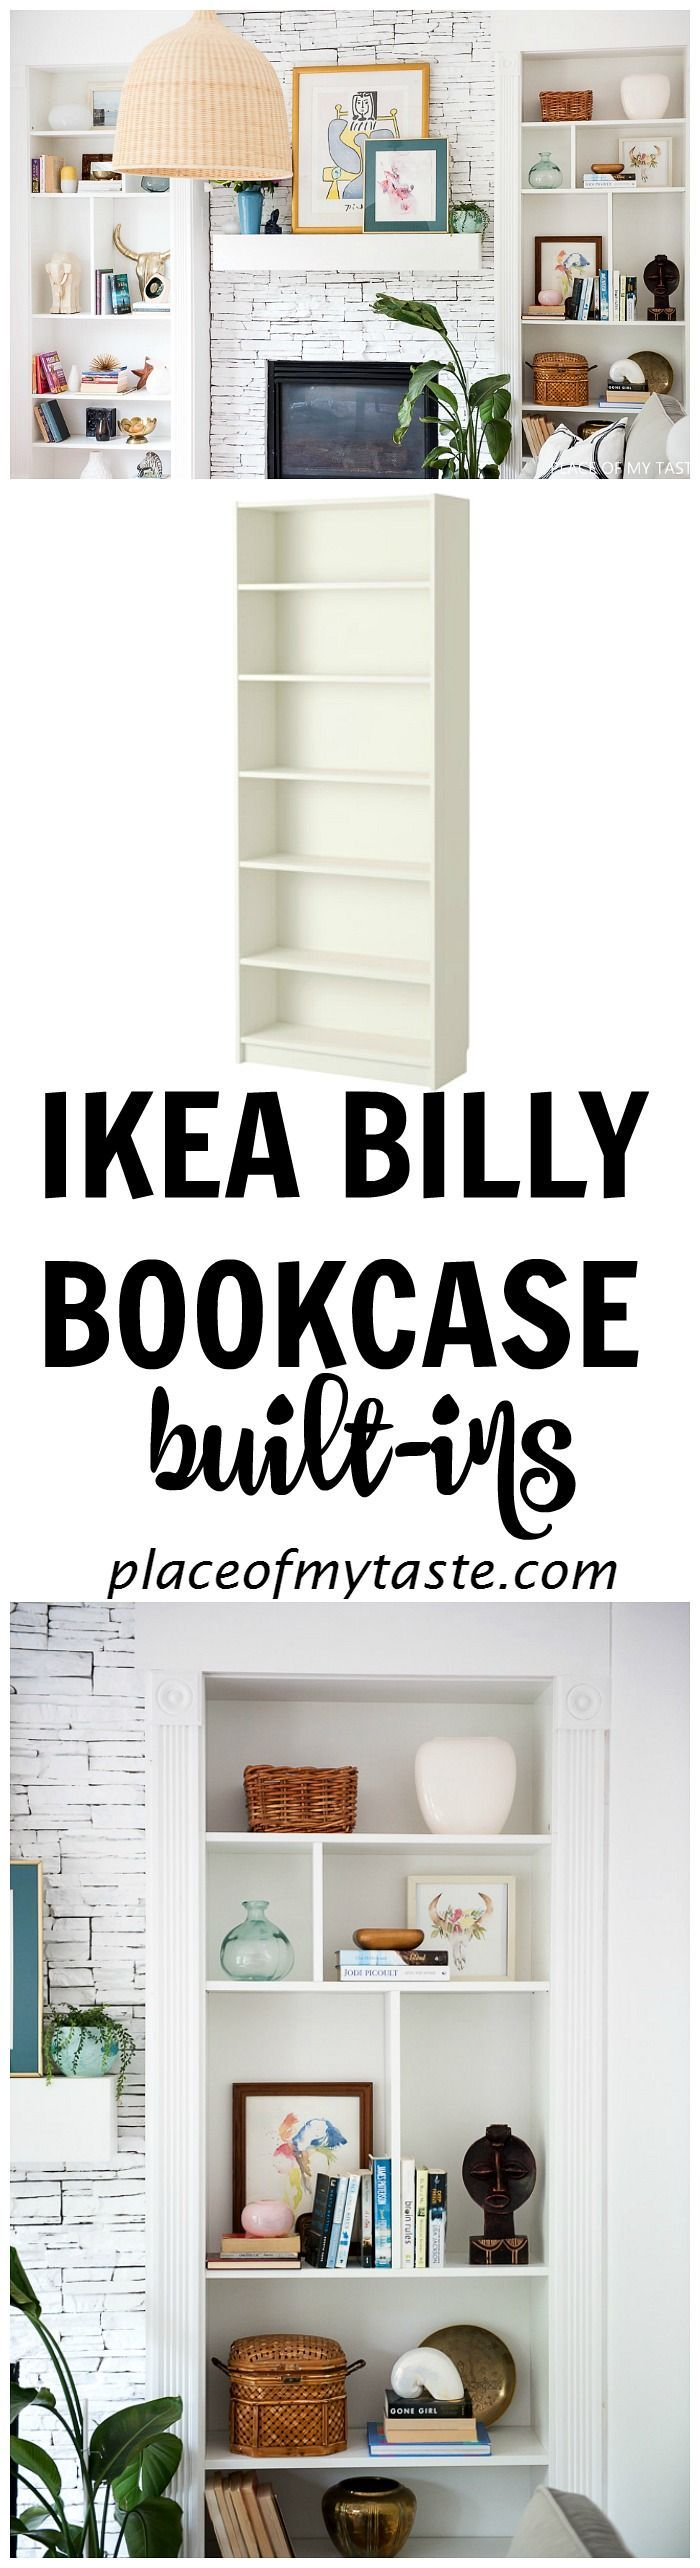 Fireplace bookcase on pinterest bookshelves around fireplace shelv - How To Make Ikea Billy Bookcase Built Ins